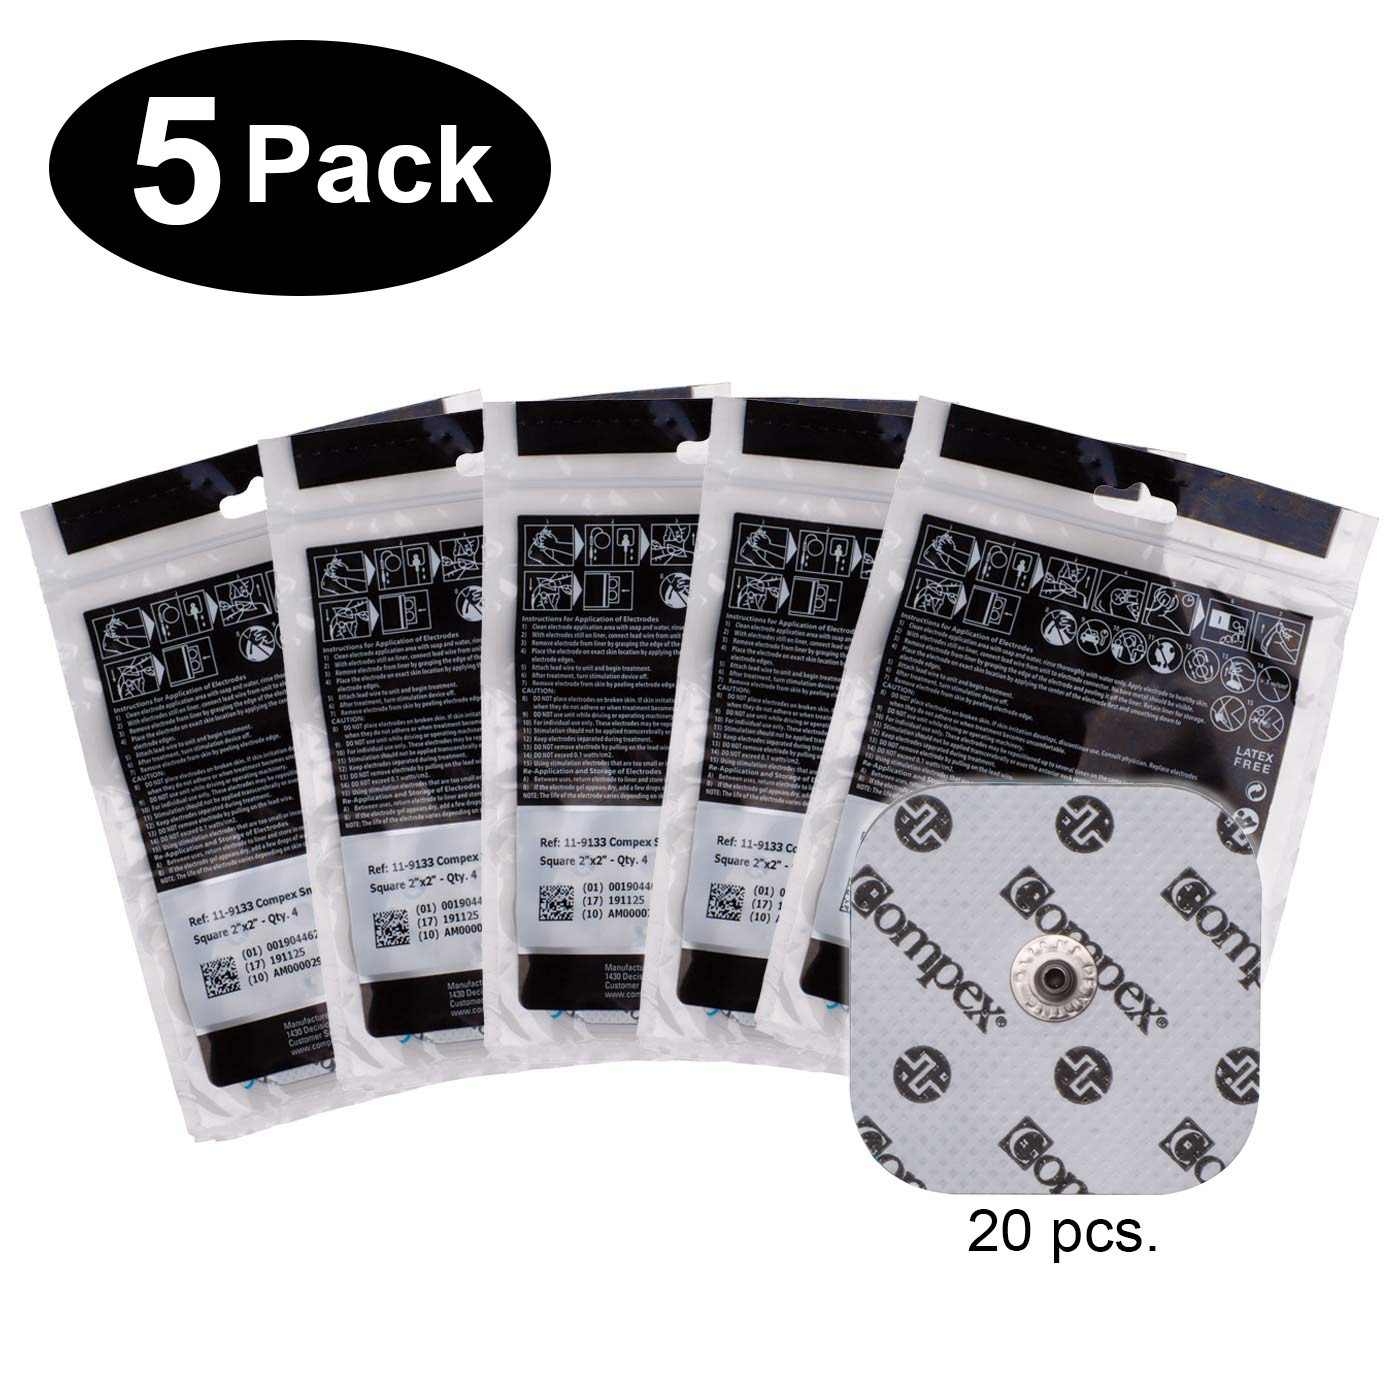 COMPEX EASY SNAP ELECTRODES 2IN X 2IN - 5 PACK (20 ELECTRODES) - WHITE